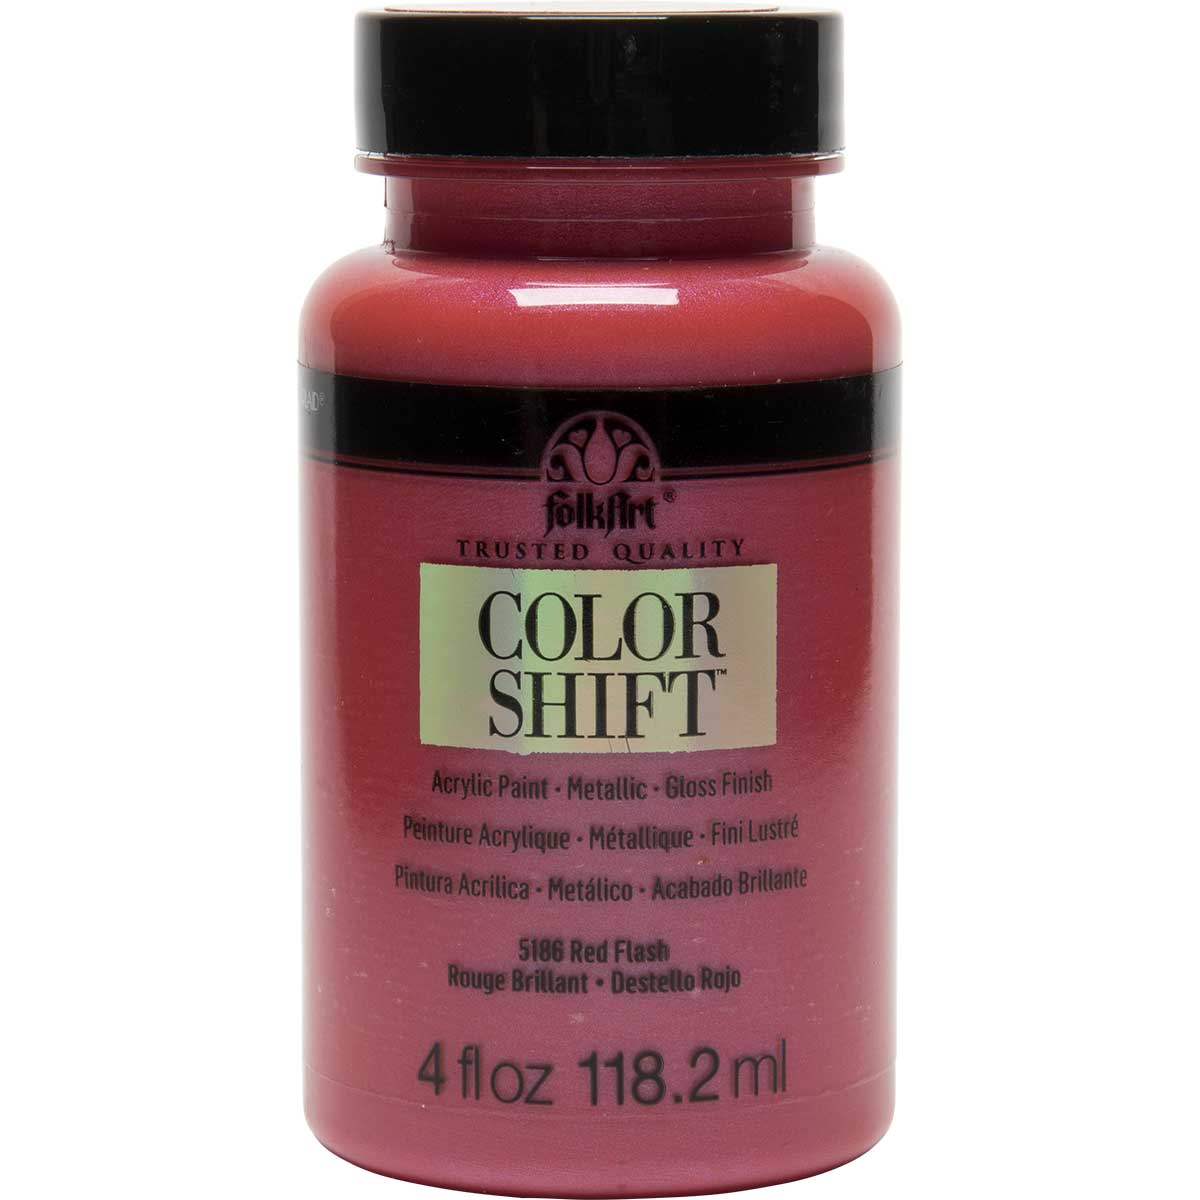 FolkArt ® Color Shift™ Acrylic Paint - Red Flash, 4 oz. - 5186